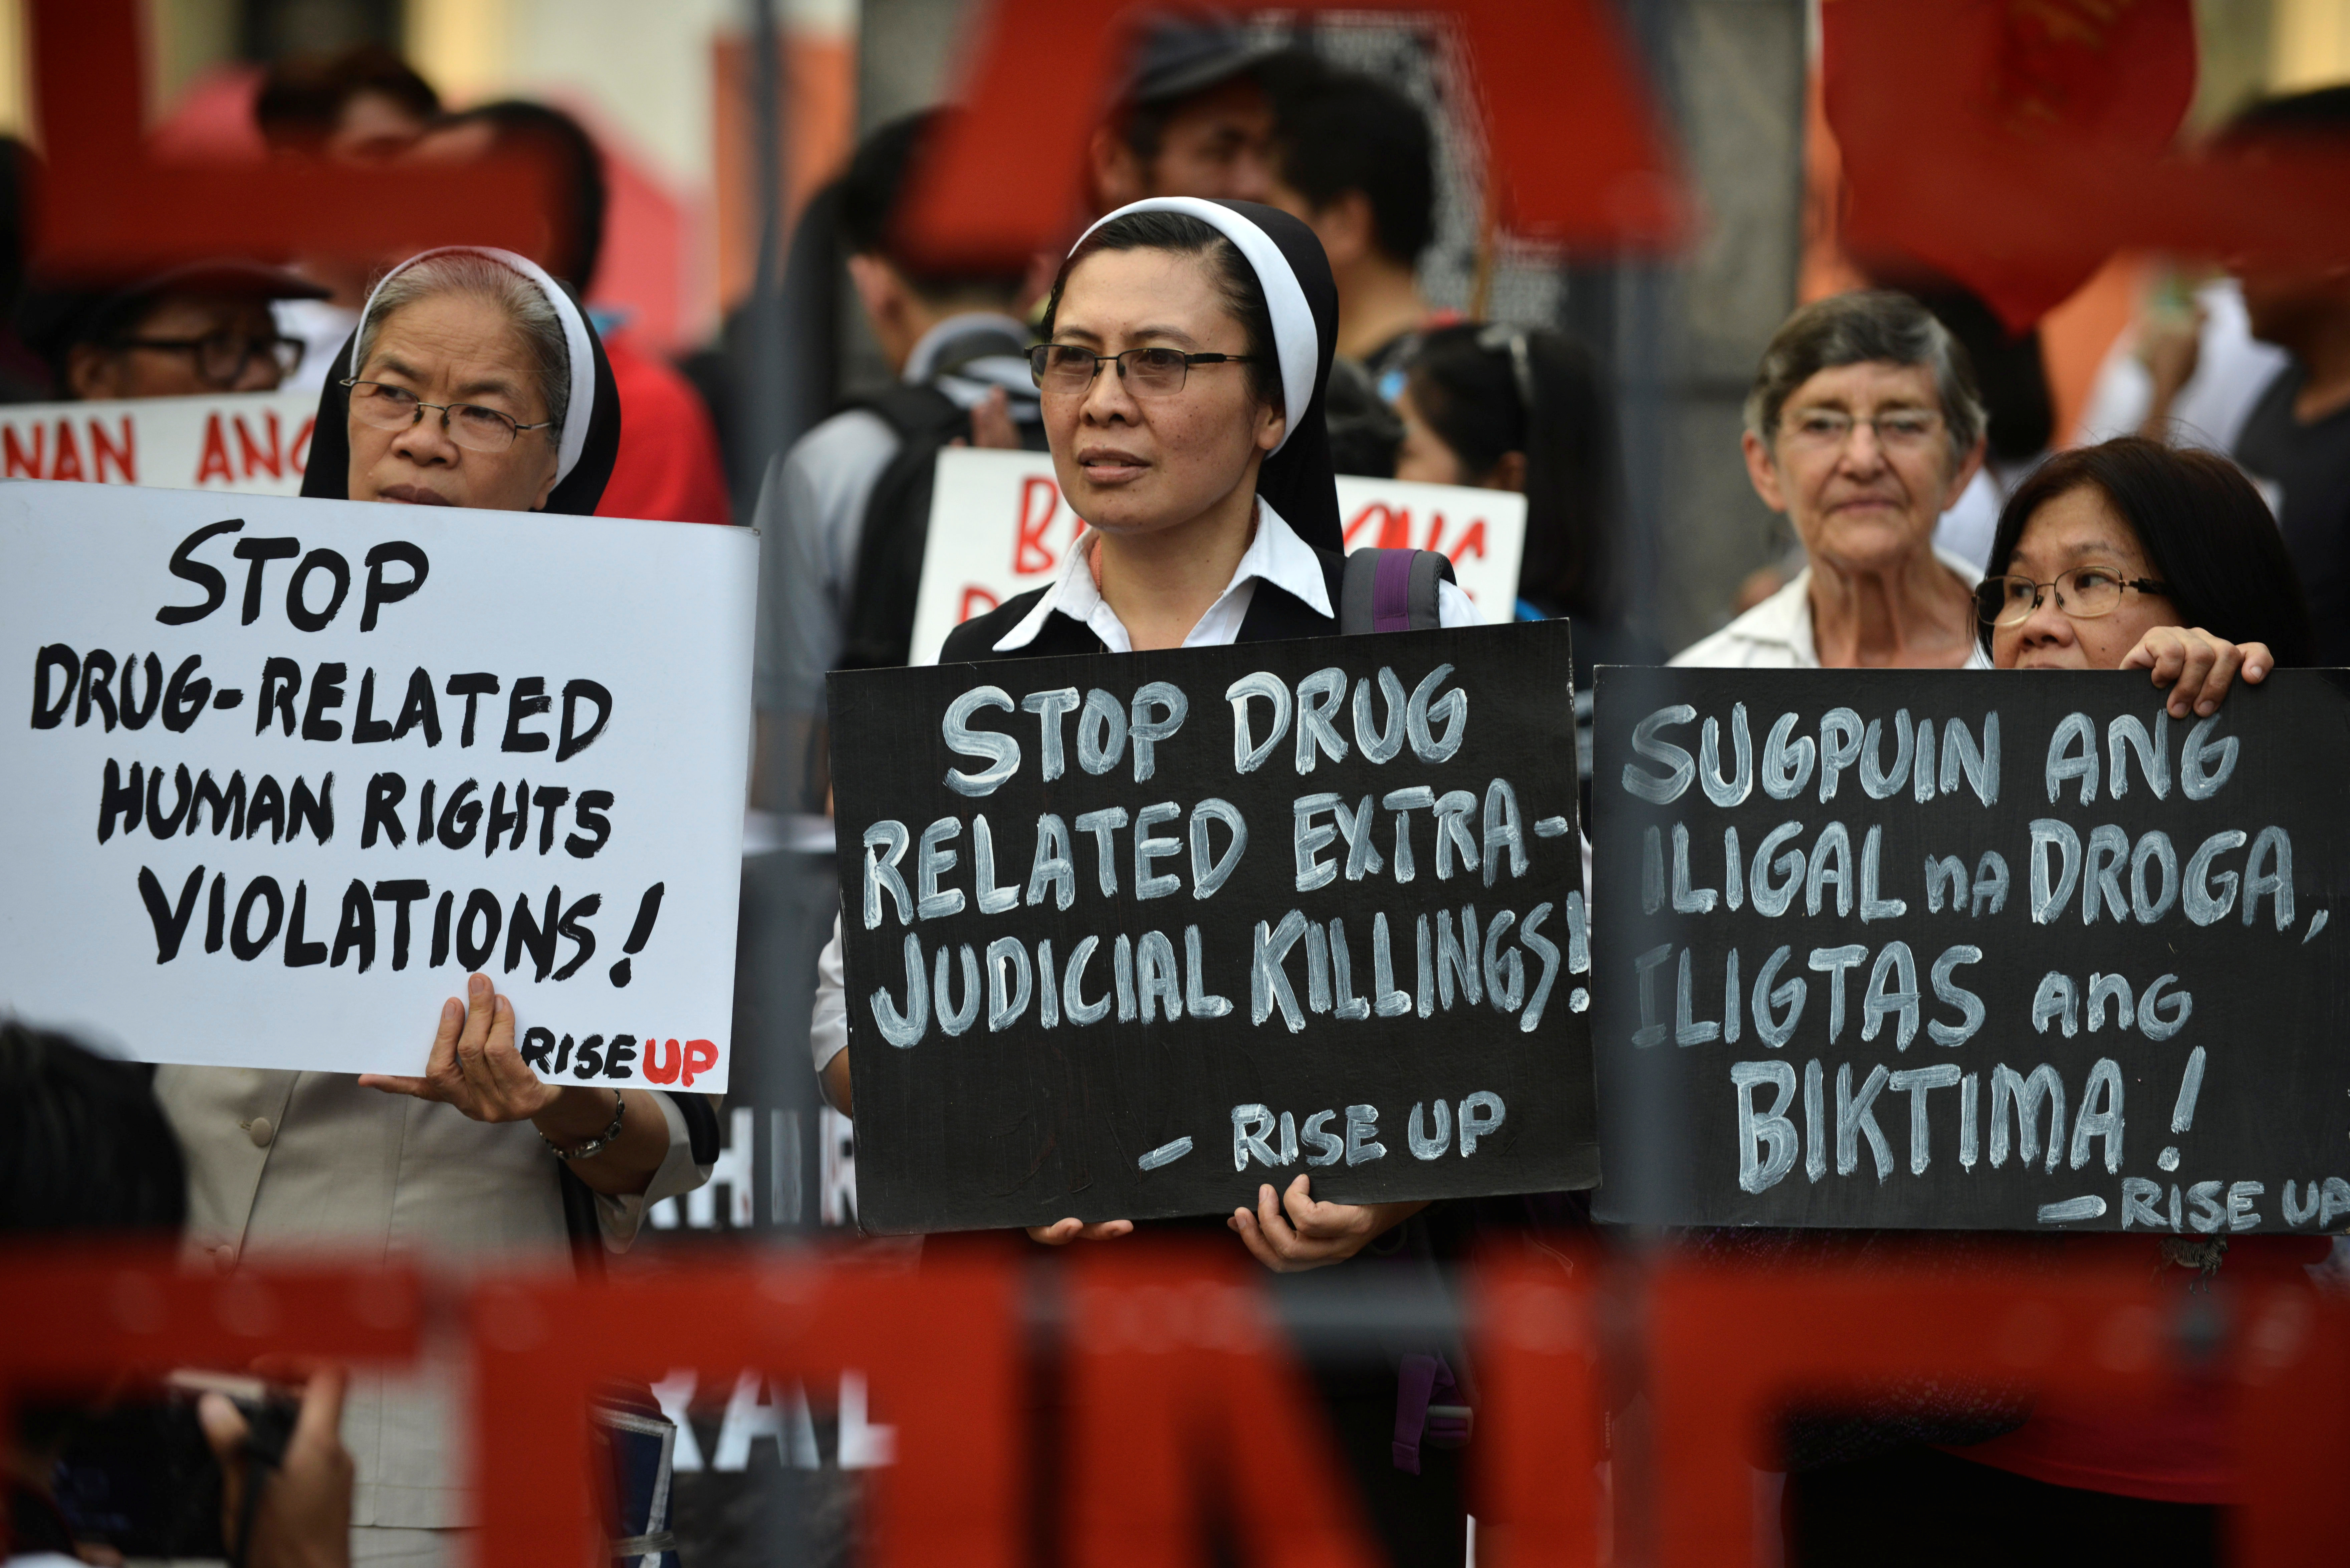 FILE - Catholic nuns hold placards as they protest against what organizers say are drug-related extrajudicial killings, during International Human Rights Day in Manila, Philippines, Dec. 10, 2016.